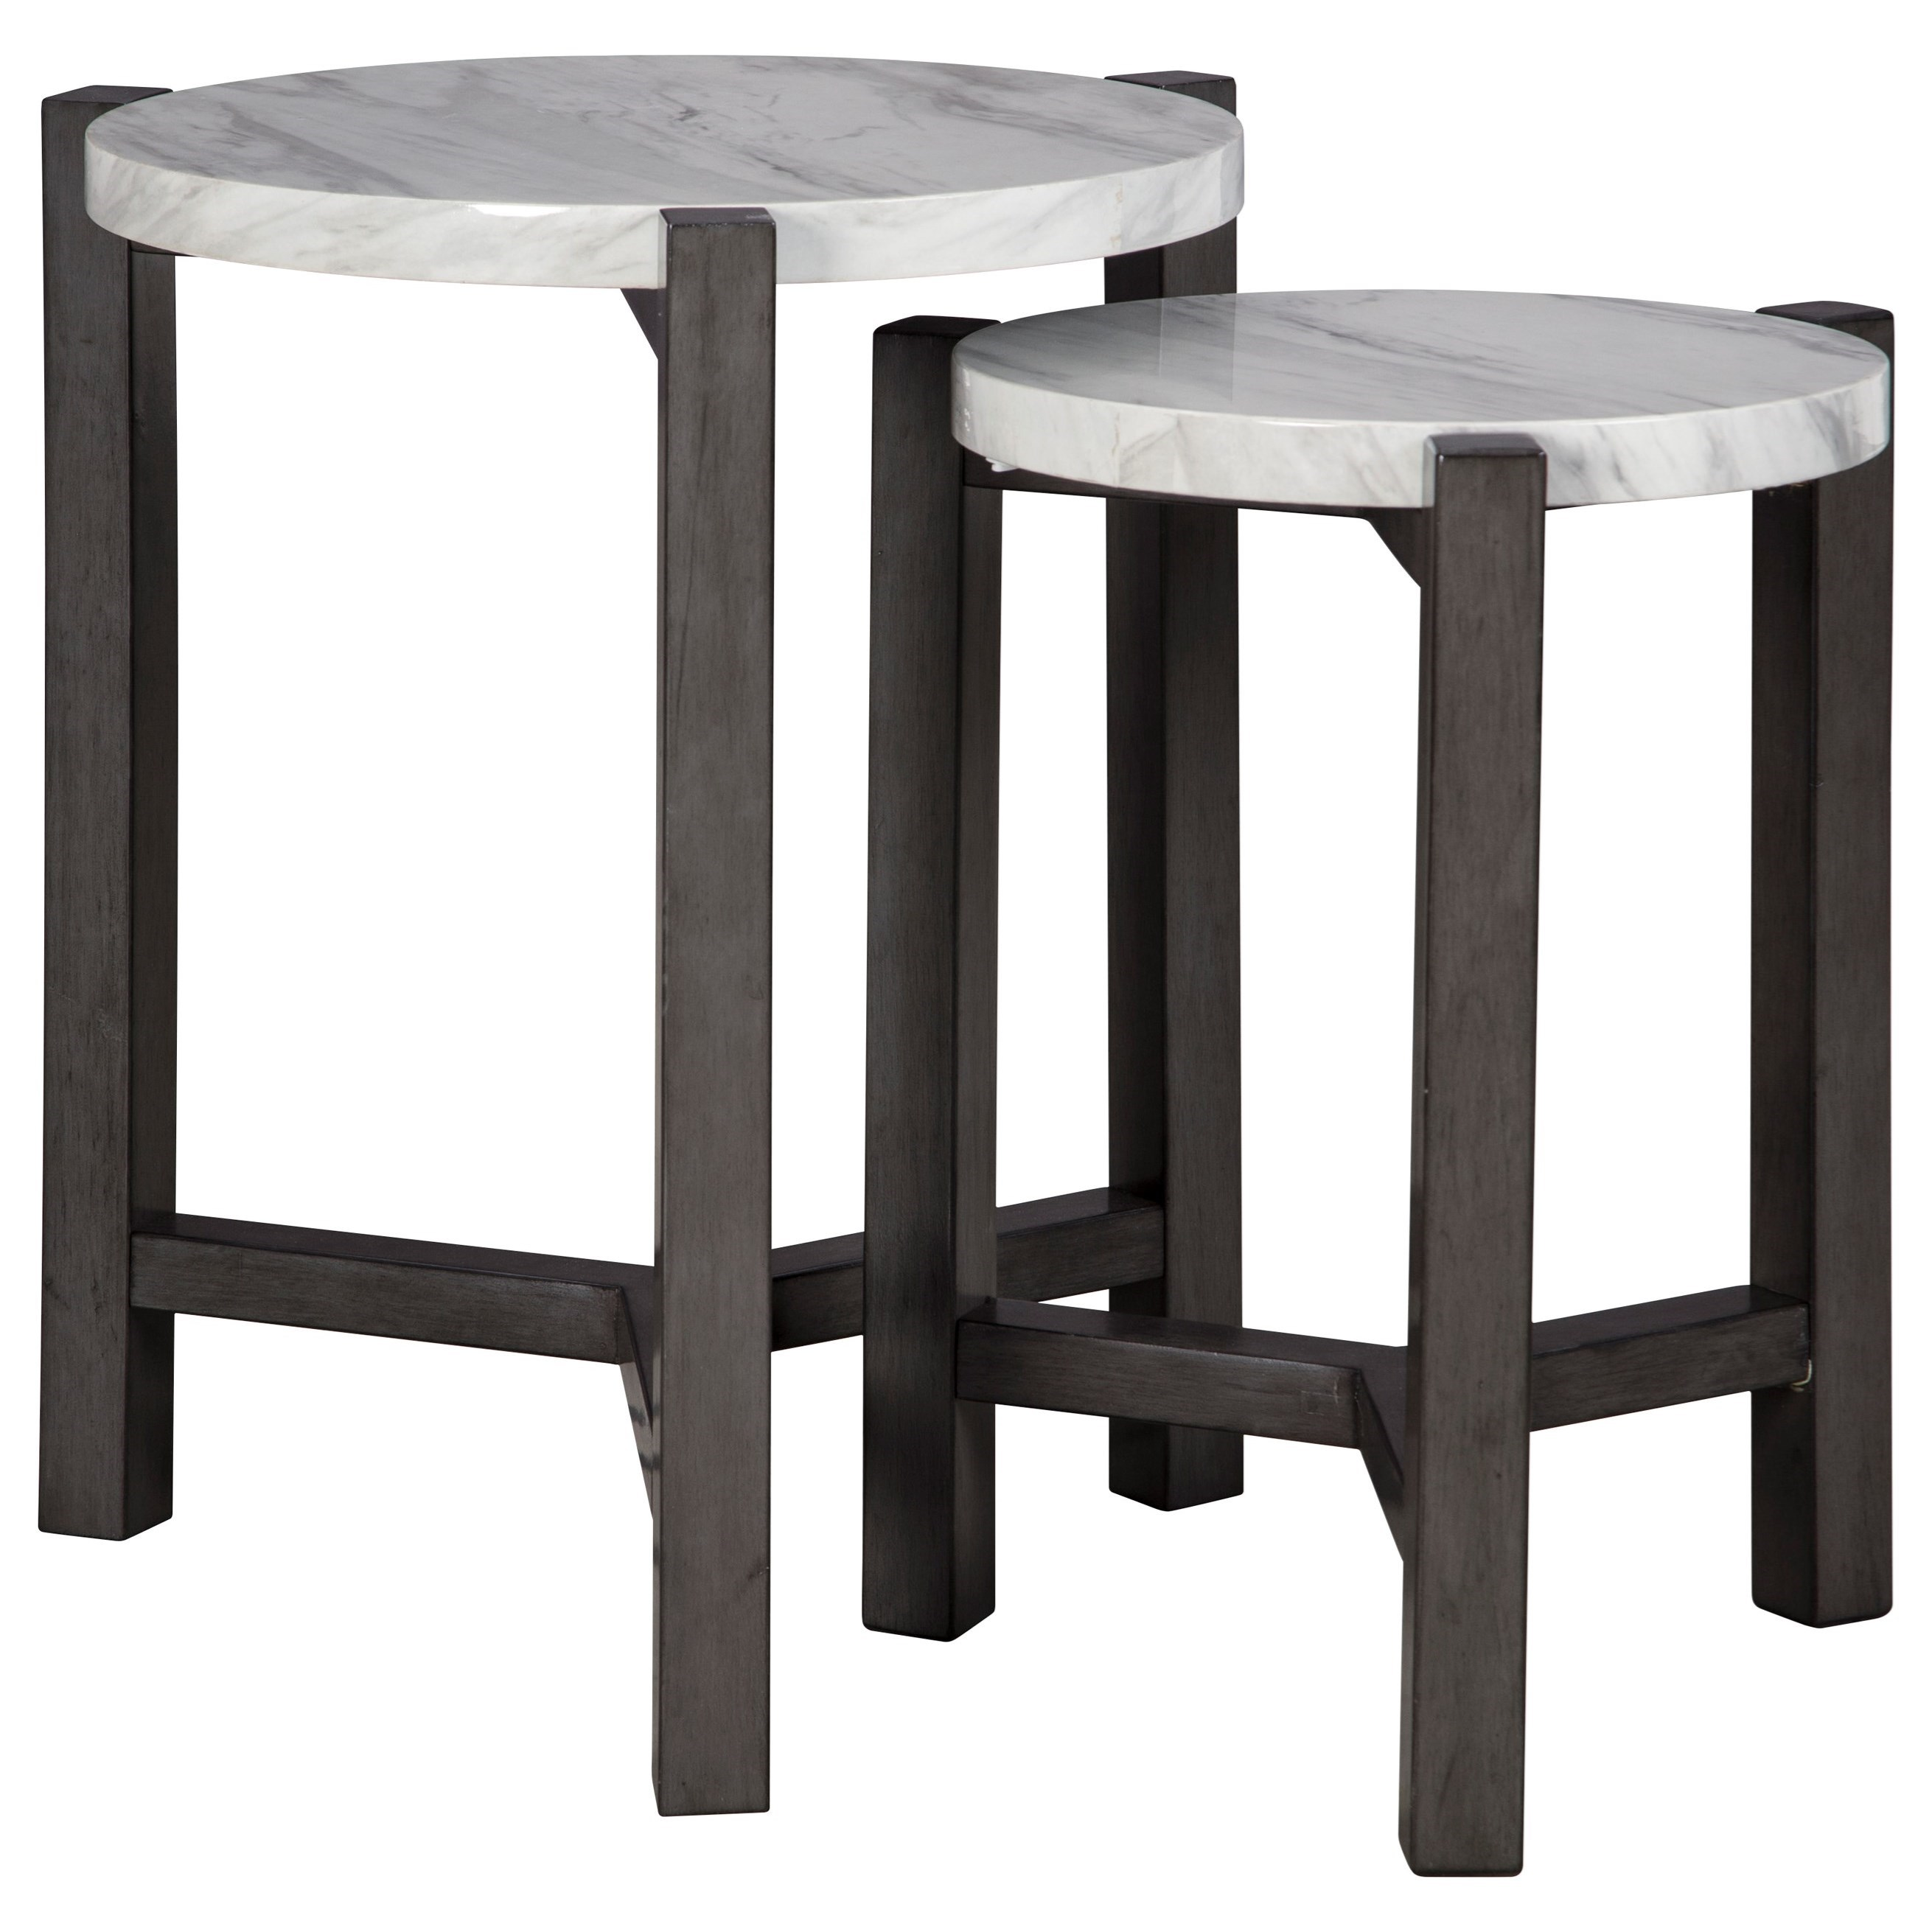 Crossport Accent Table Set by Signature Design by Ashley at Darvin Furniture